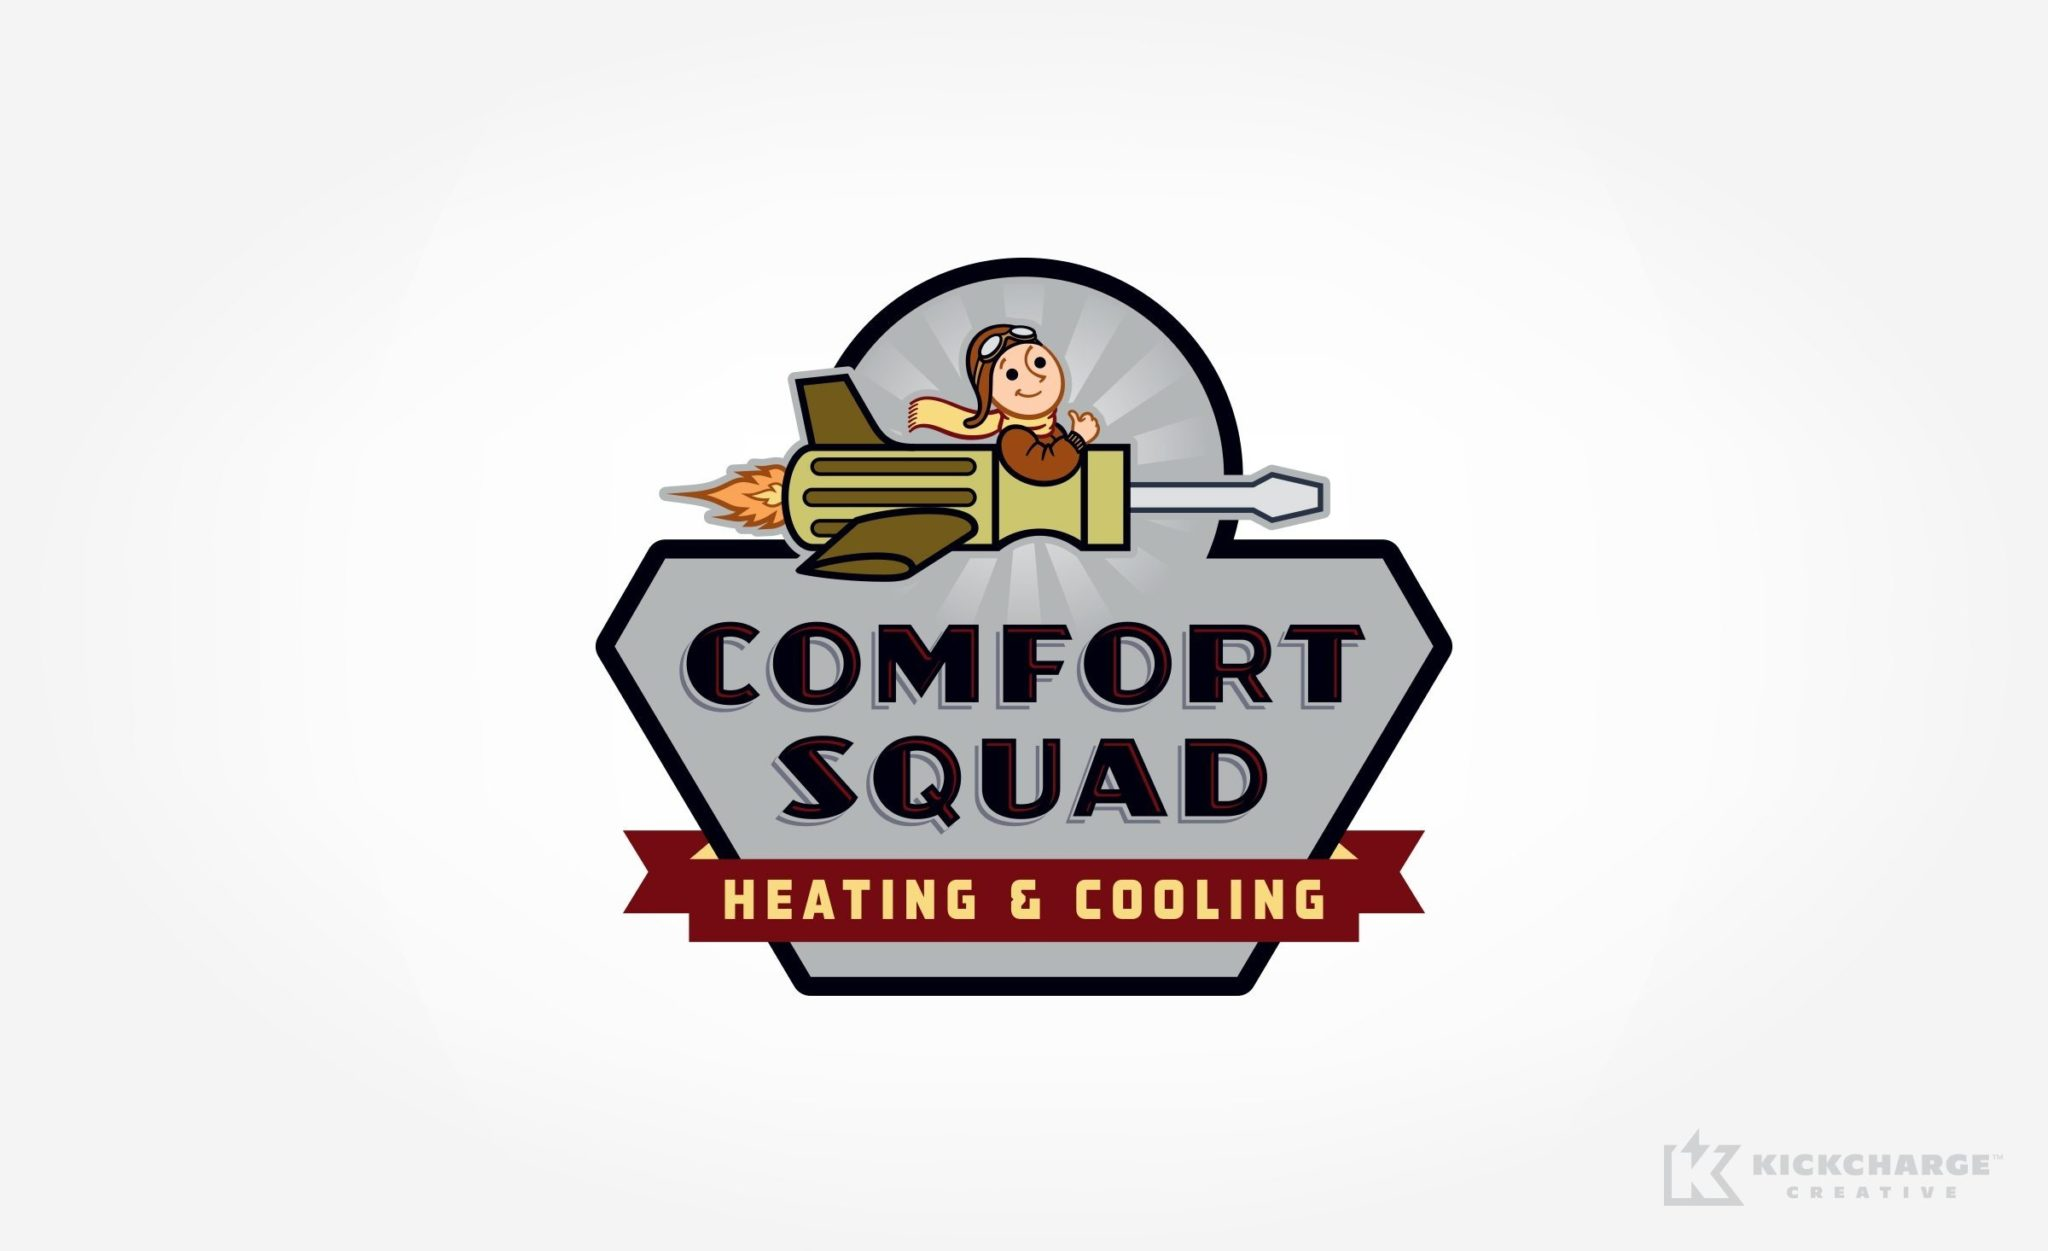 Comfort Squad Heating & Cooling